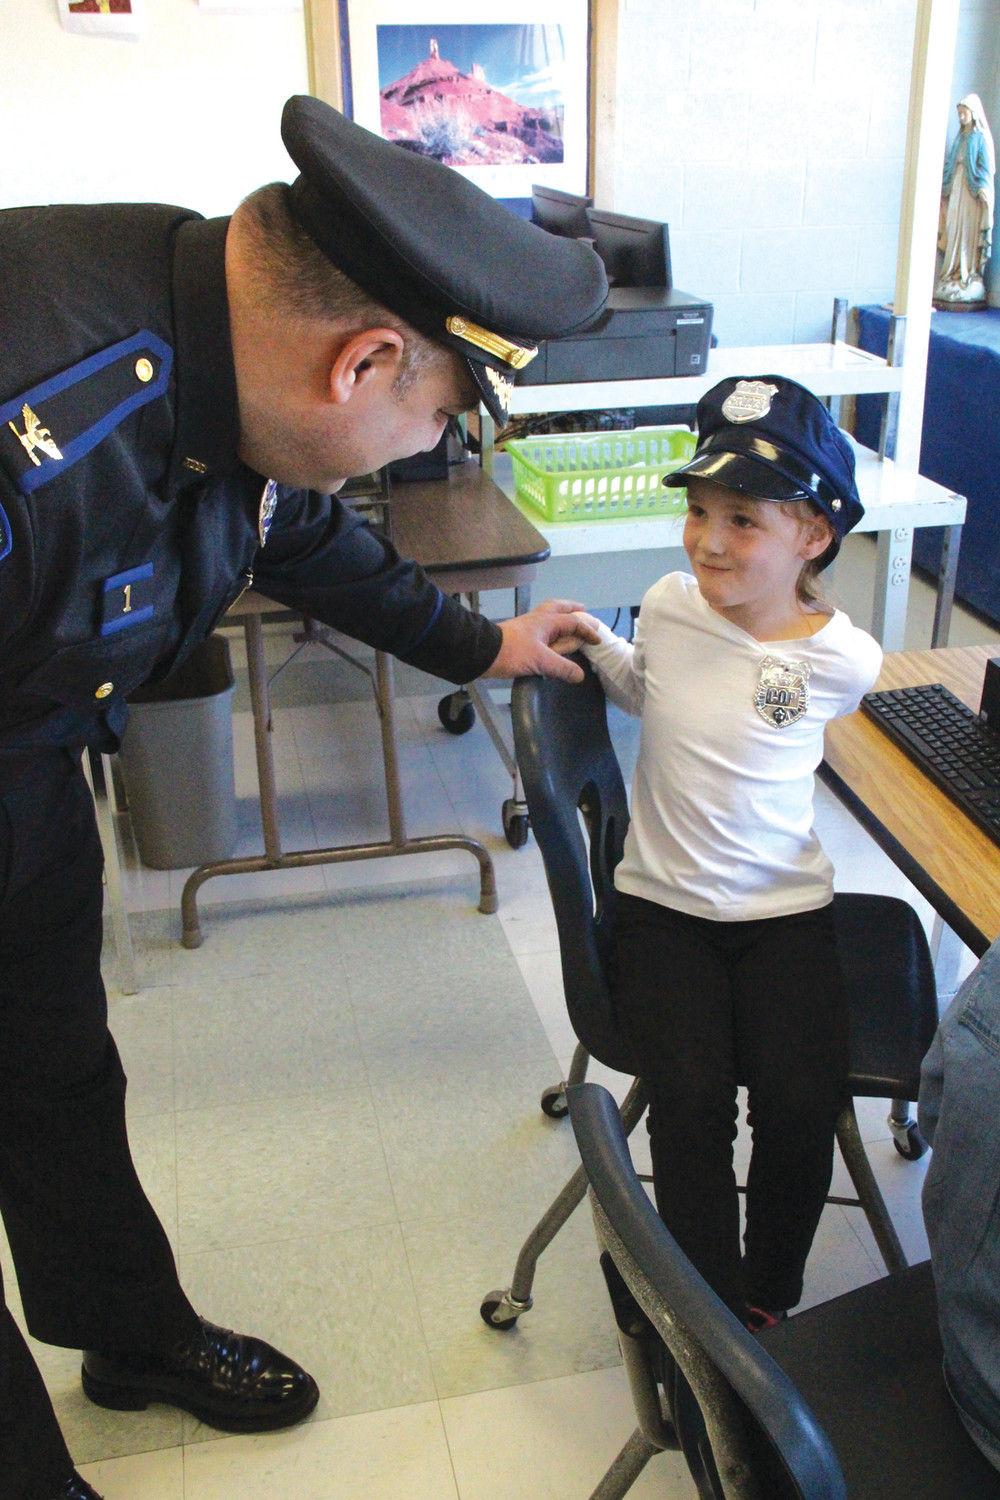 ROLE MODEL: Eliza Abedon, a kindergarten student at St. Kevin School, came dressed as a police officer for 'career day' during Catholic Schools Week. She got a chance to talk to North Providence Police Chief David Tikoian Wednesday morning.